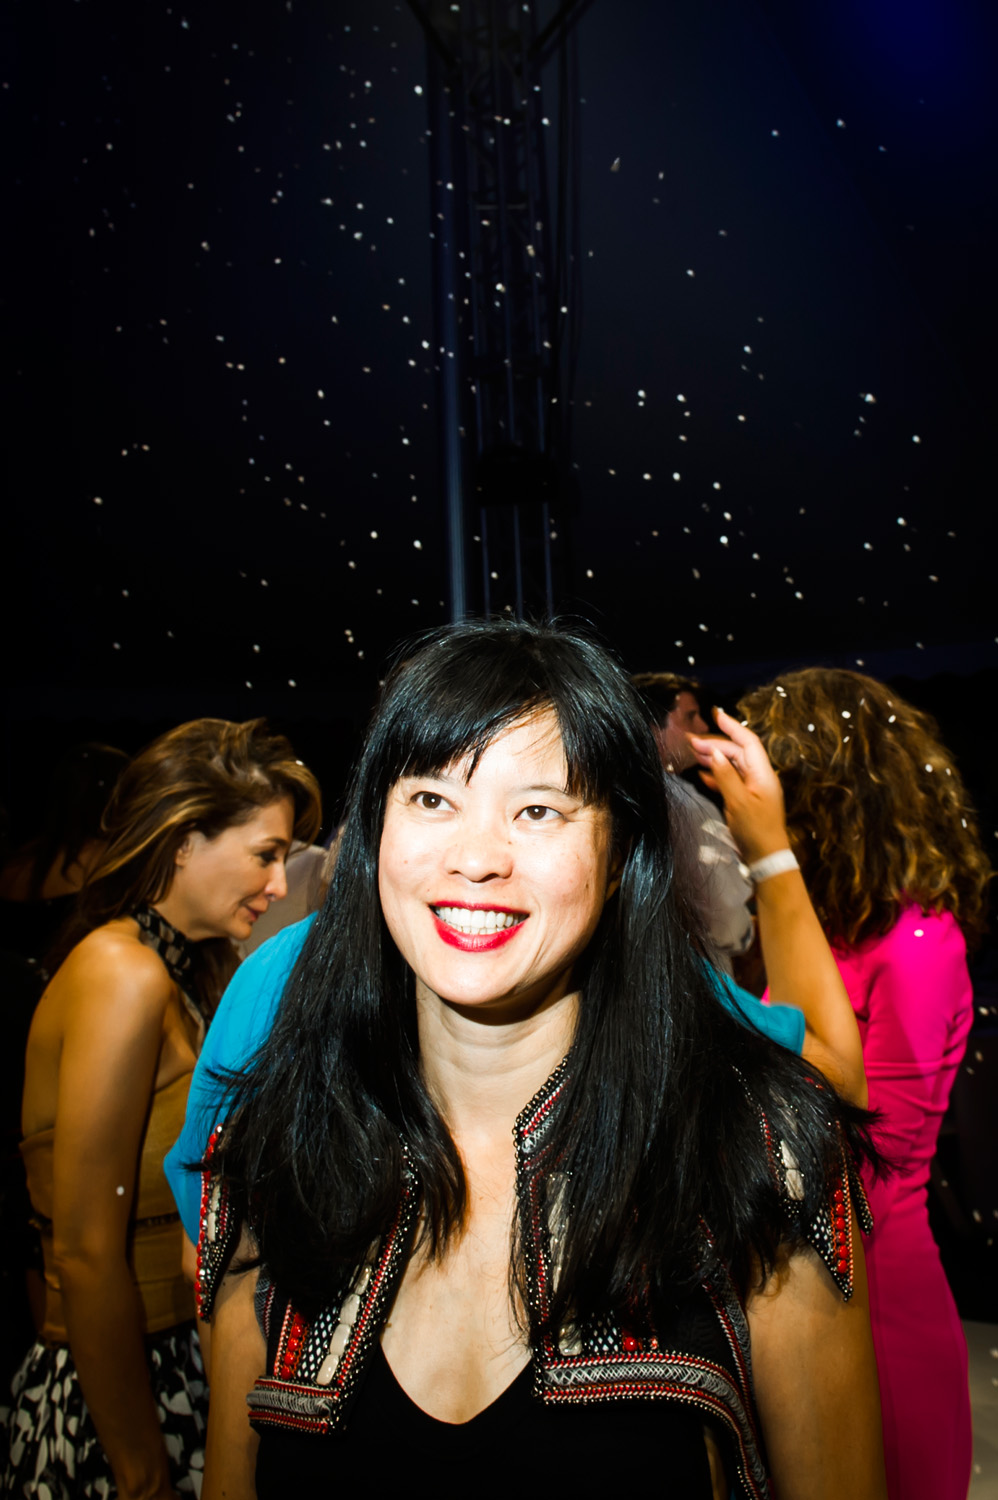 Watermill Center - Fada: House of Madness - Annual Benefit 2016 - Joanne Ooi of Plukka